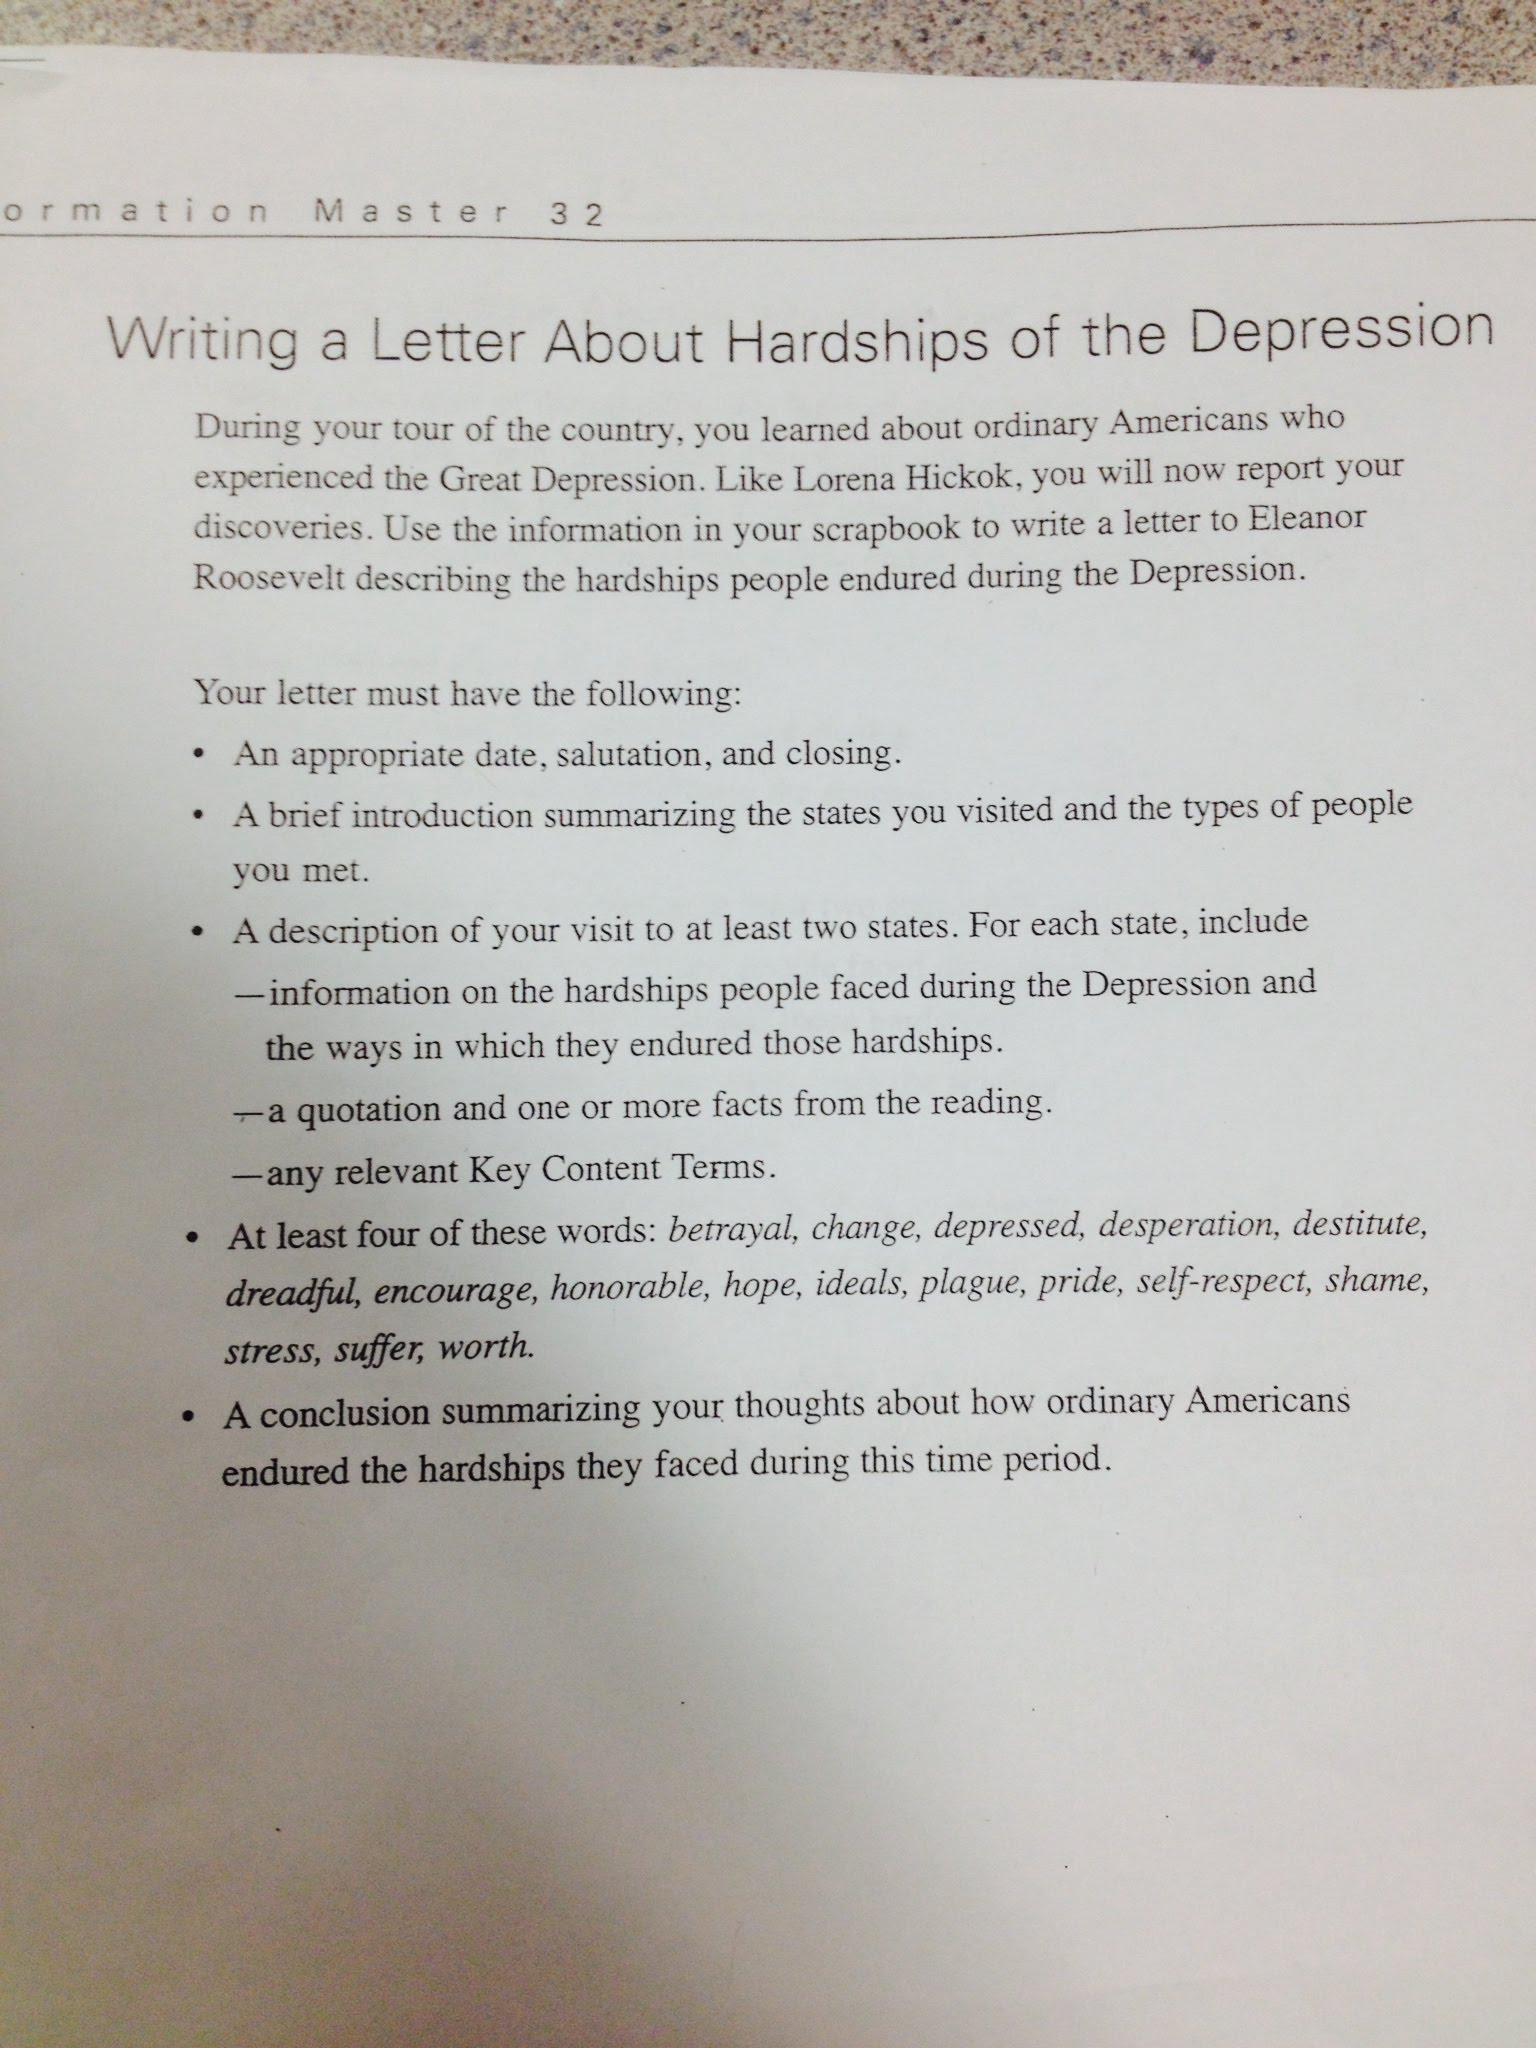 012 Letter Conclusion Of The Great Depression Essay Amazing Full